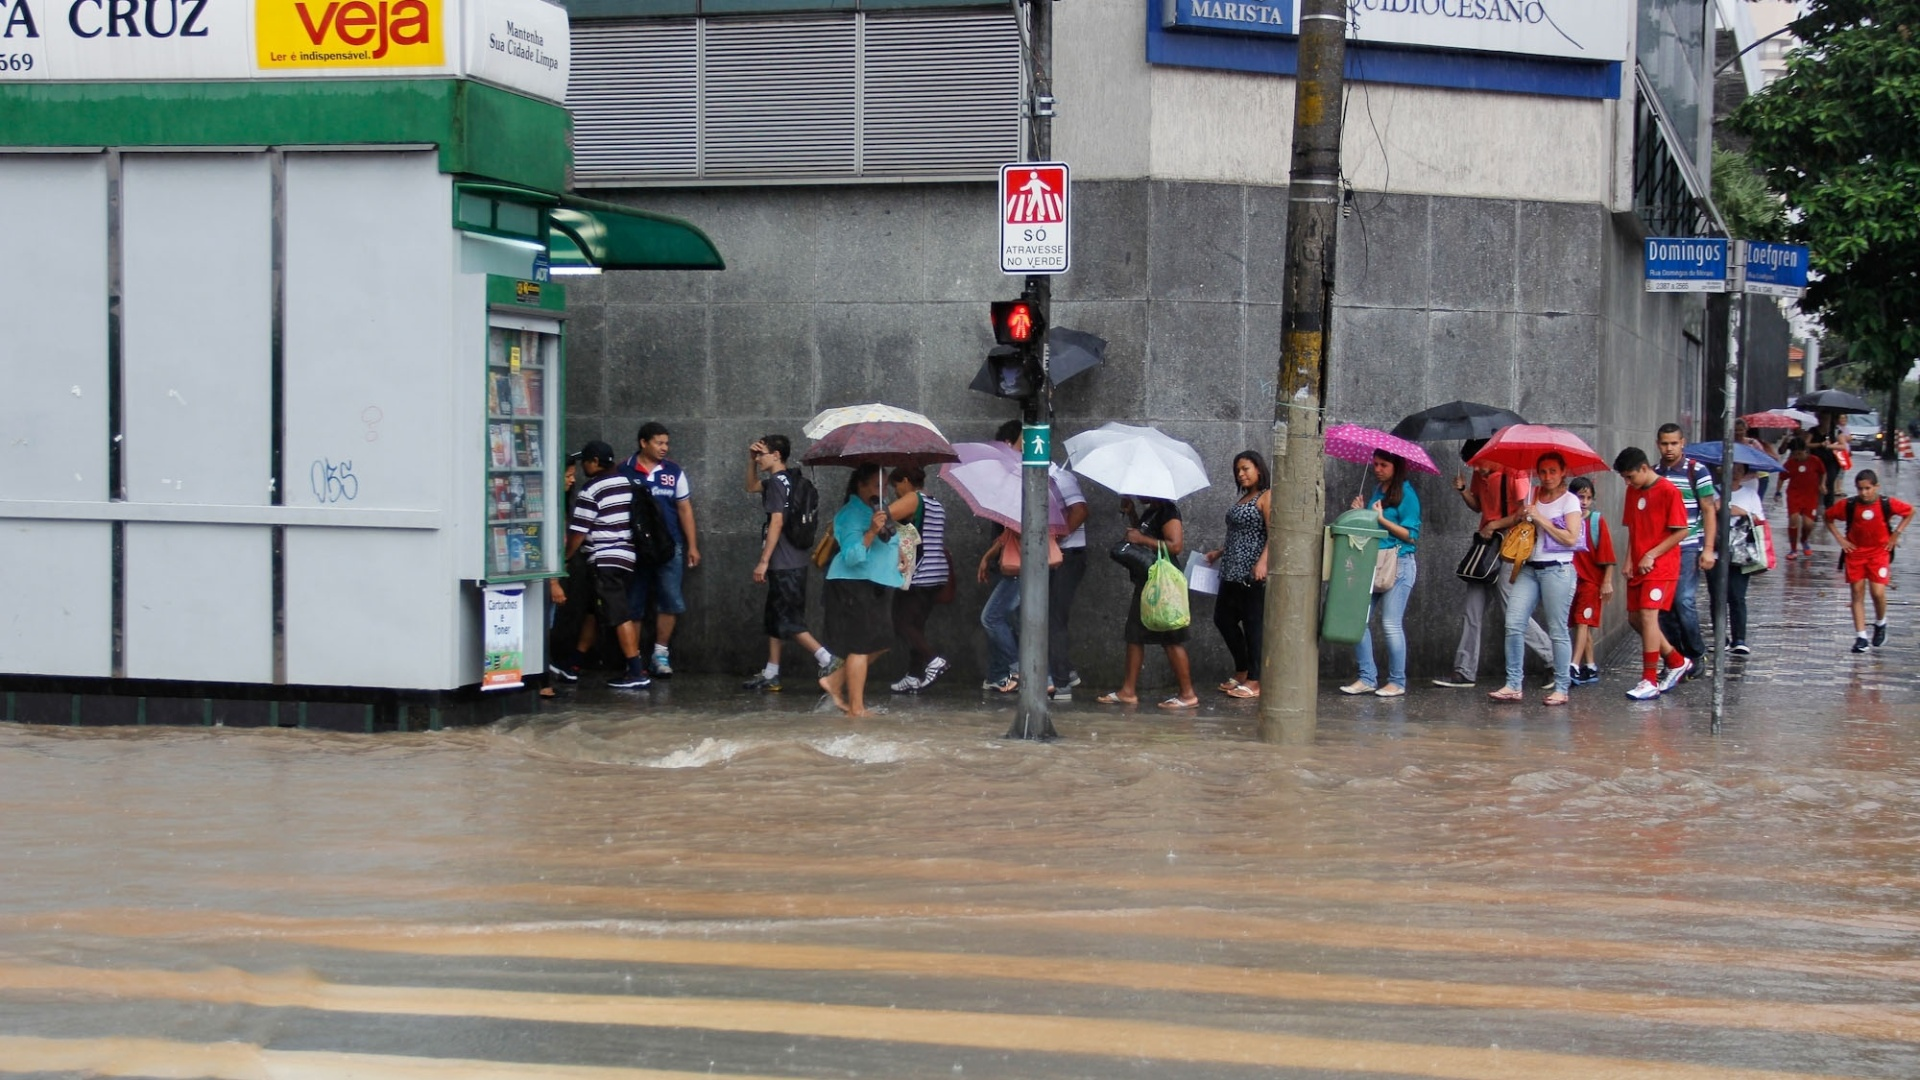 15.fev.2013 - Chuva provoca ponto de alagamento na esquina da avenida Domingos de Morais com a rua Loefgreen, no bairro Vila Mariana, zona sul de So Paulo, na tarde desta sexta-feira (15)